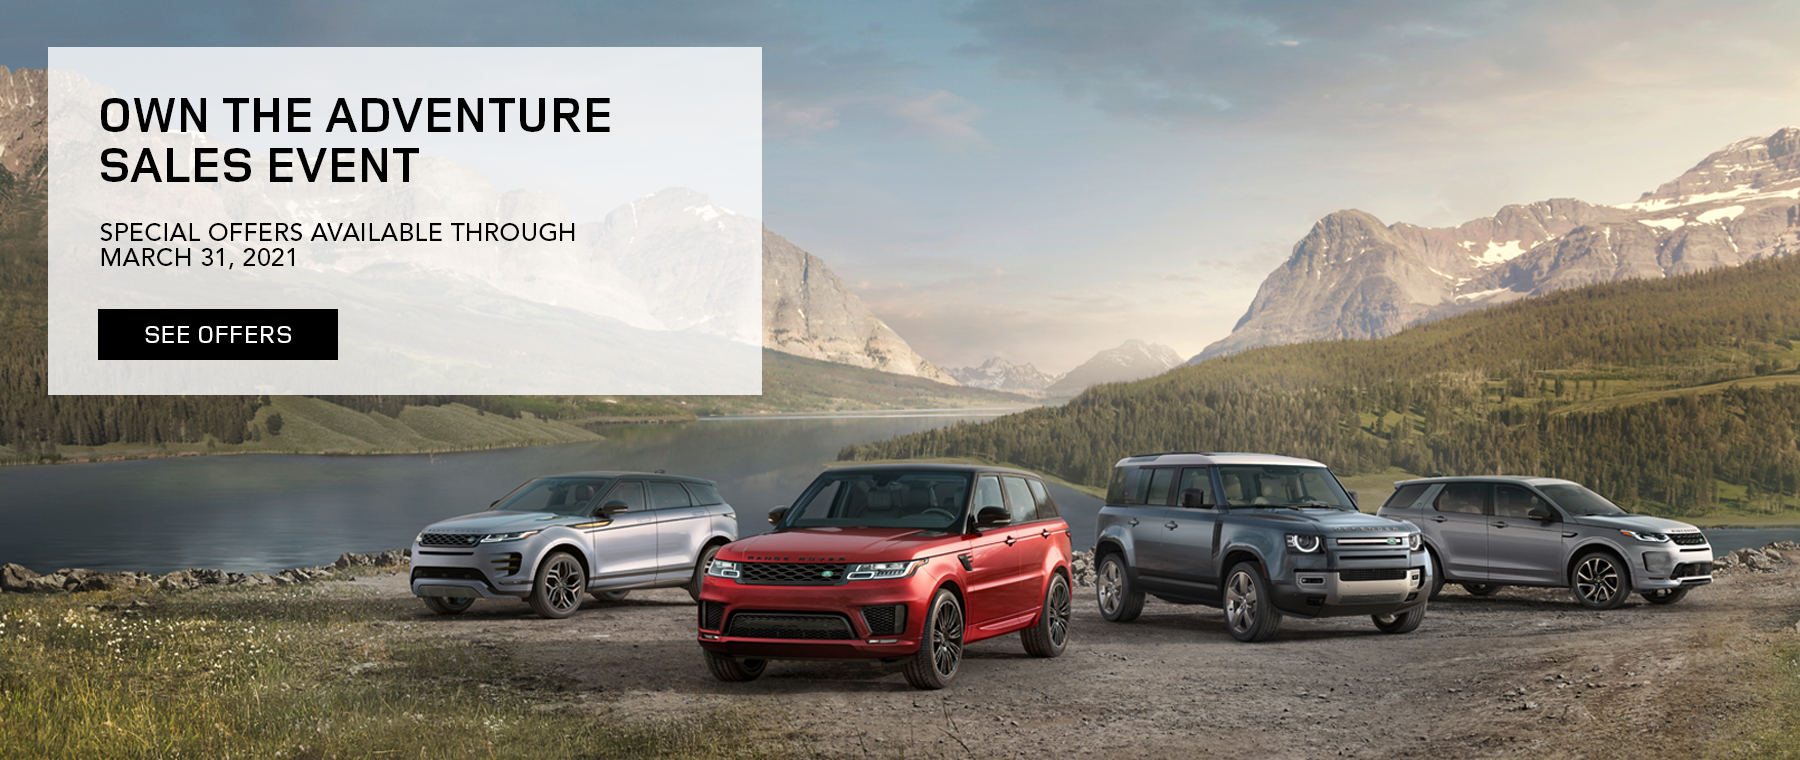 Land Rover Own the Adventure Spring 1800×760